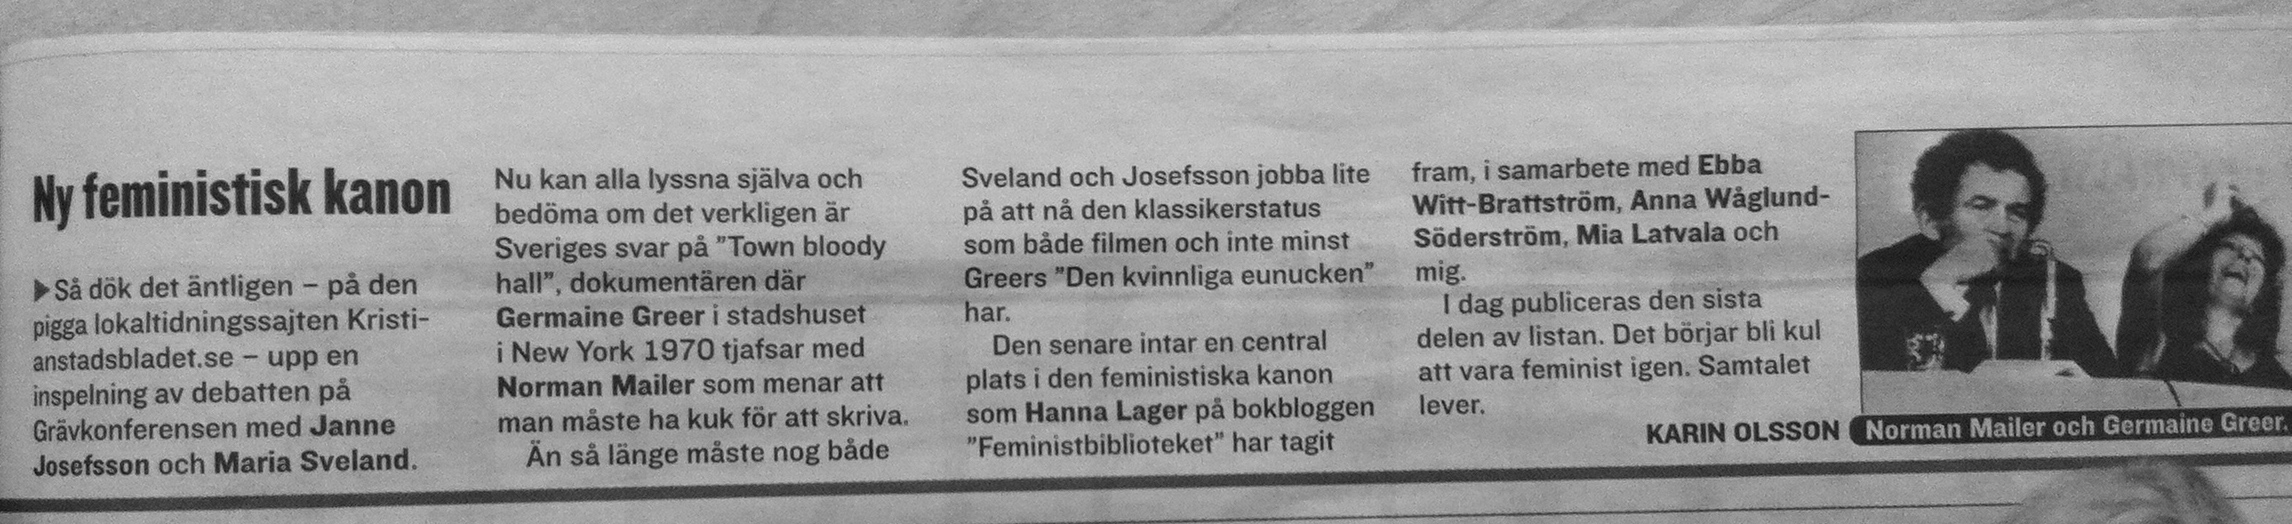 Notis i Expressen Kultur 22/3 2013